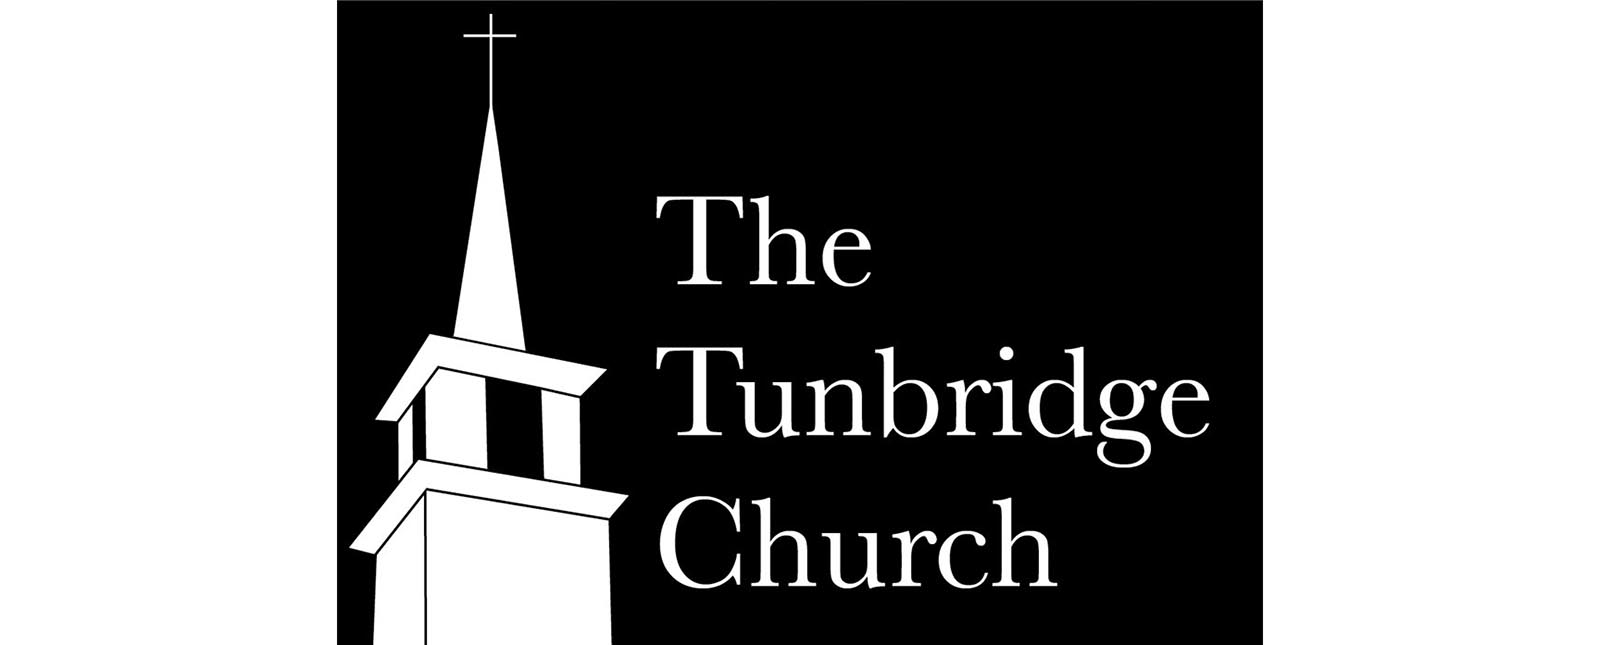 The Tunbridge Church